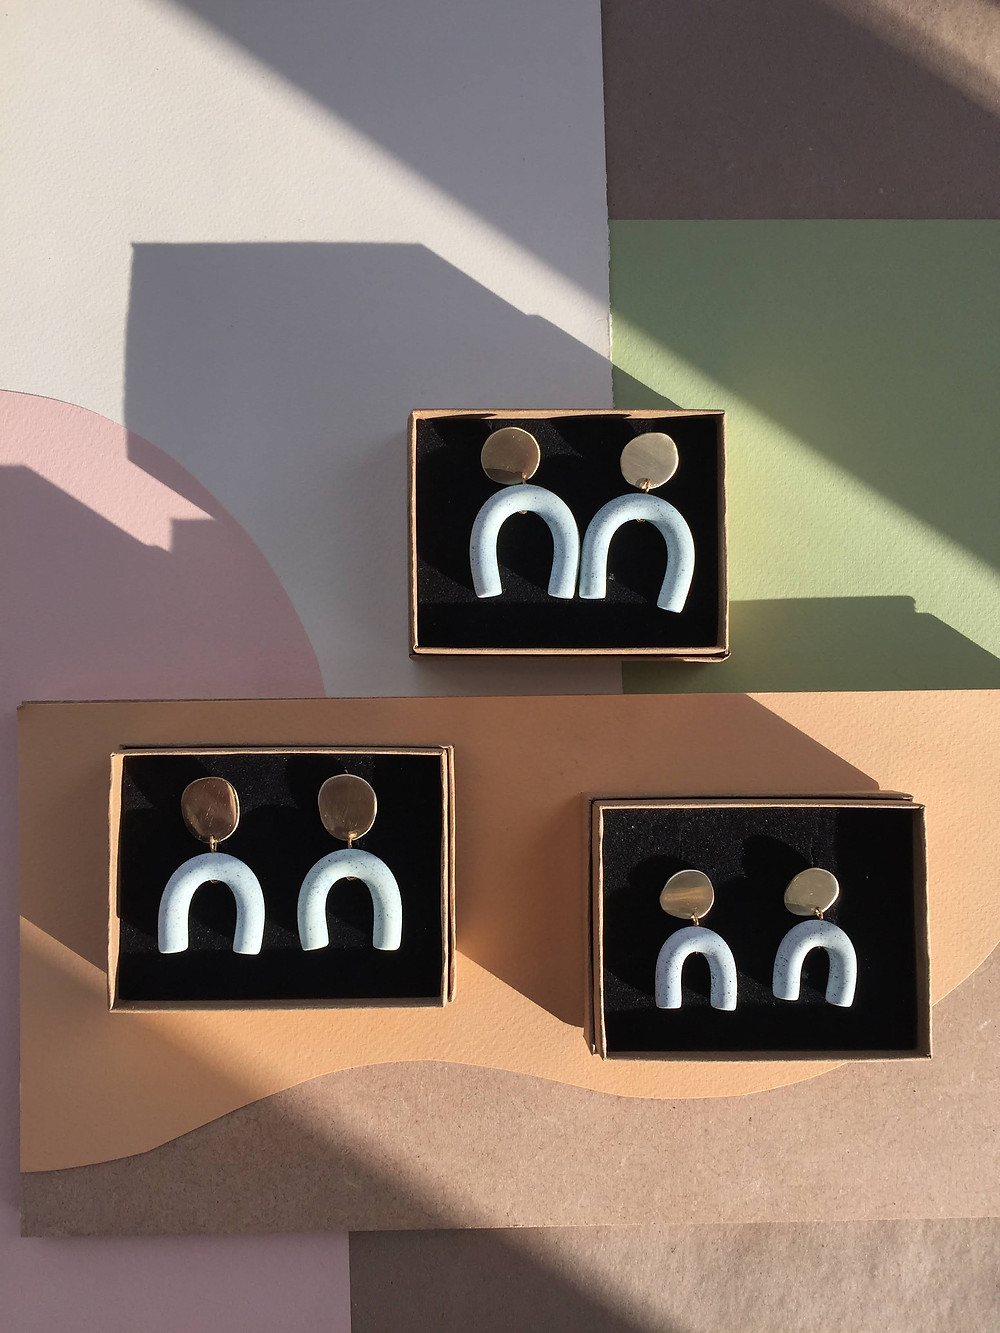 Tarney and Dolan Tarney and Dolan is a slow made jewellery project founded by artist Katie Eyre.